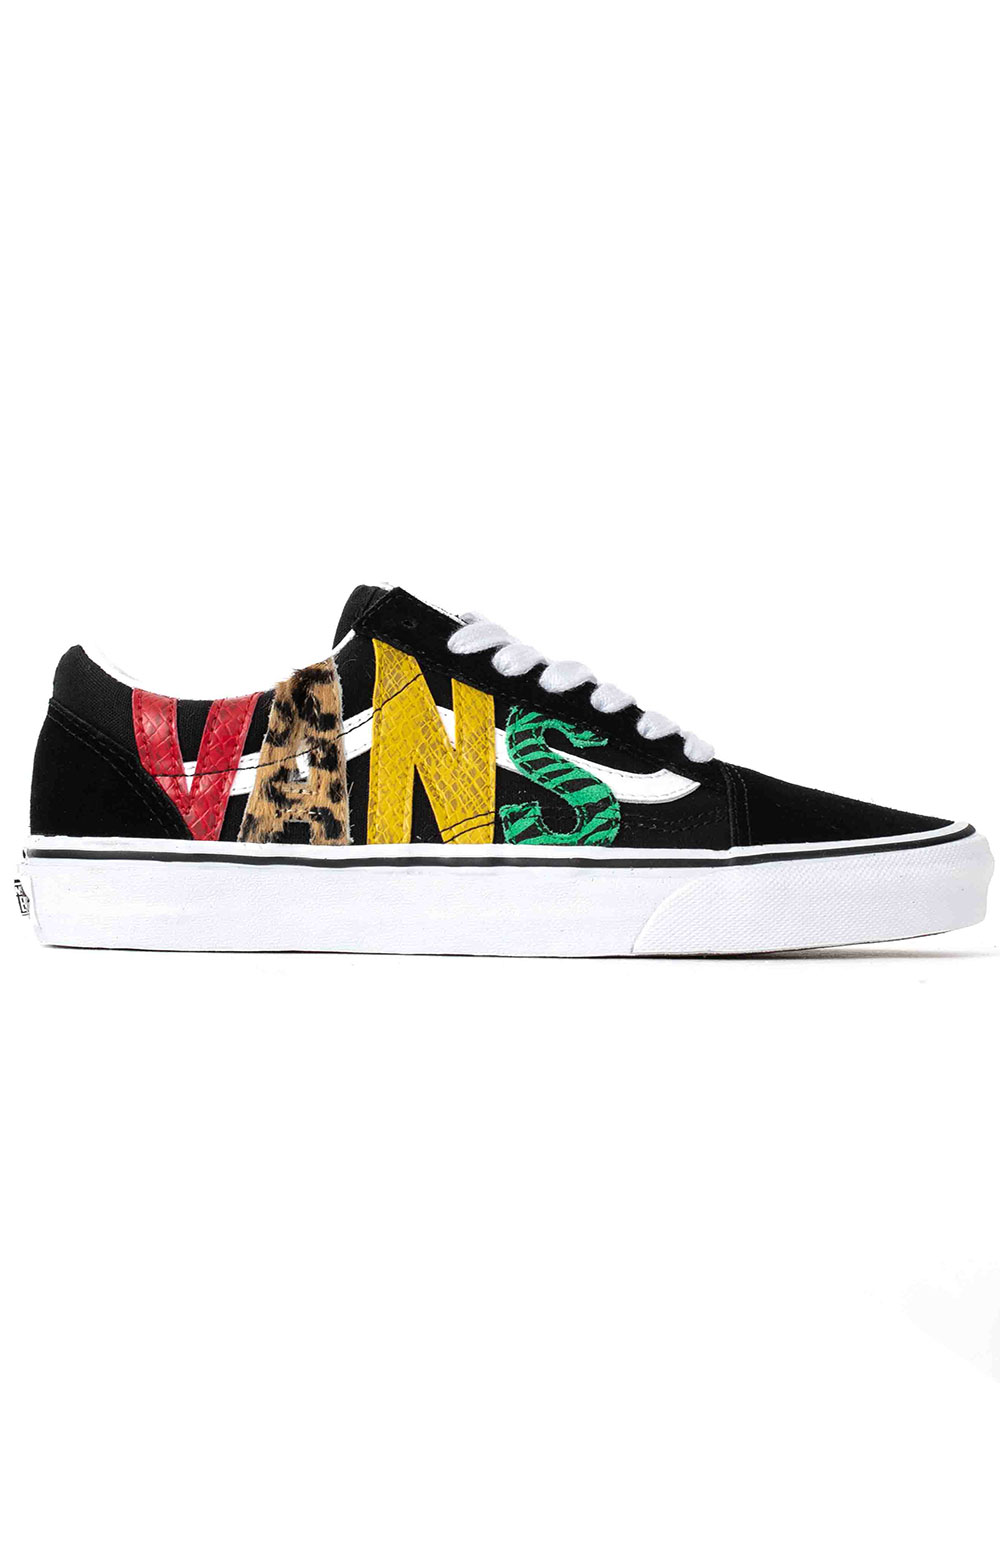 (U3BXF1) Multi Animal Old Skool Shoes - Rasta